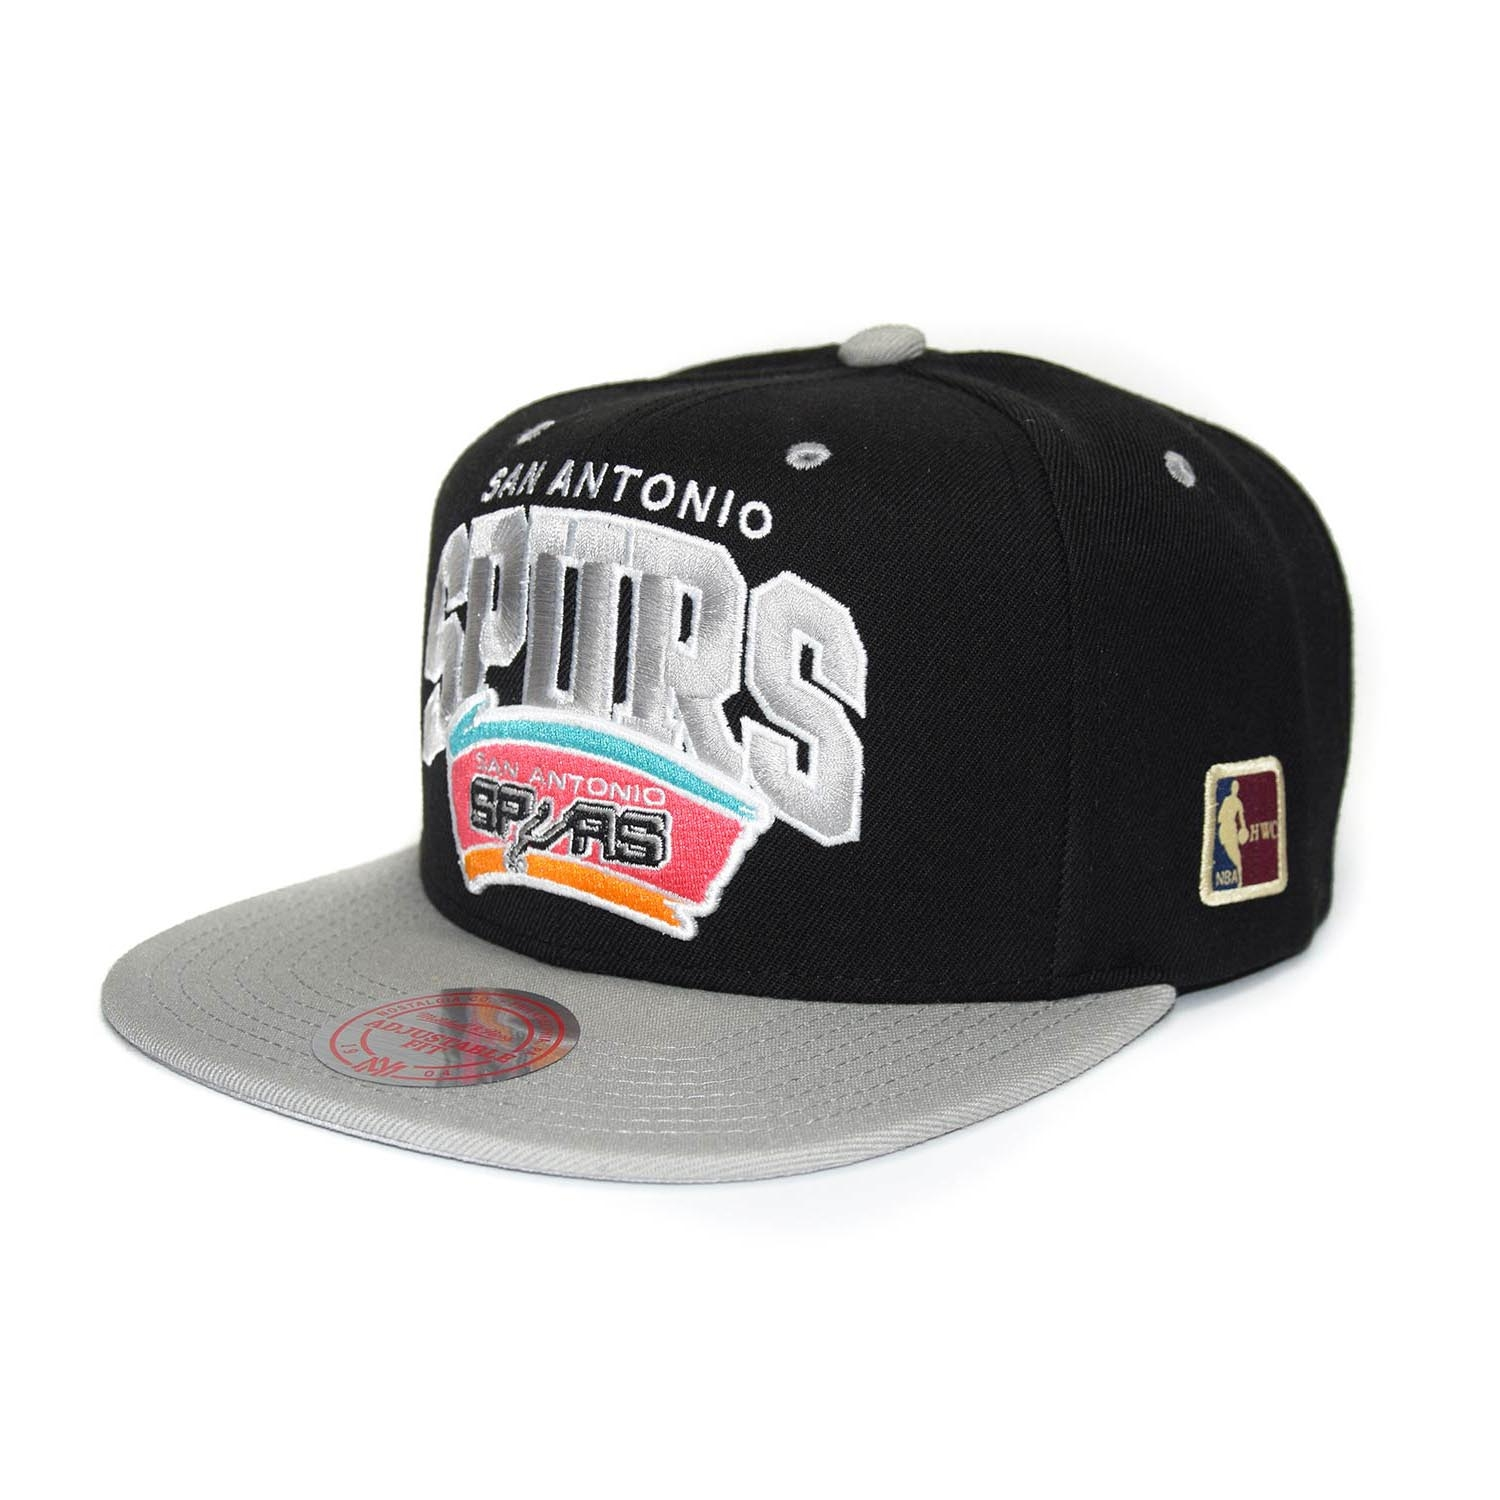 buy popular 49871 a0460 Mitchell   Ness San Antonio Spurs Team Arch Snapback NBA Cap  w HWC Patch    TAASS.com Fanshop